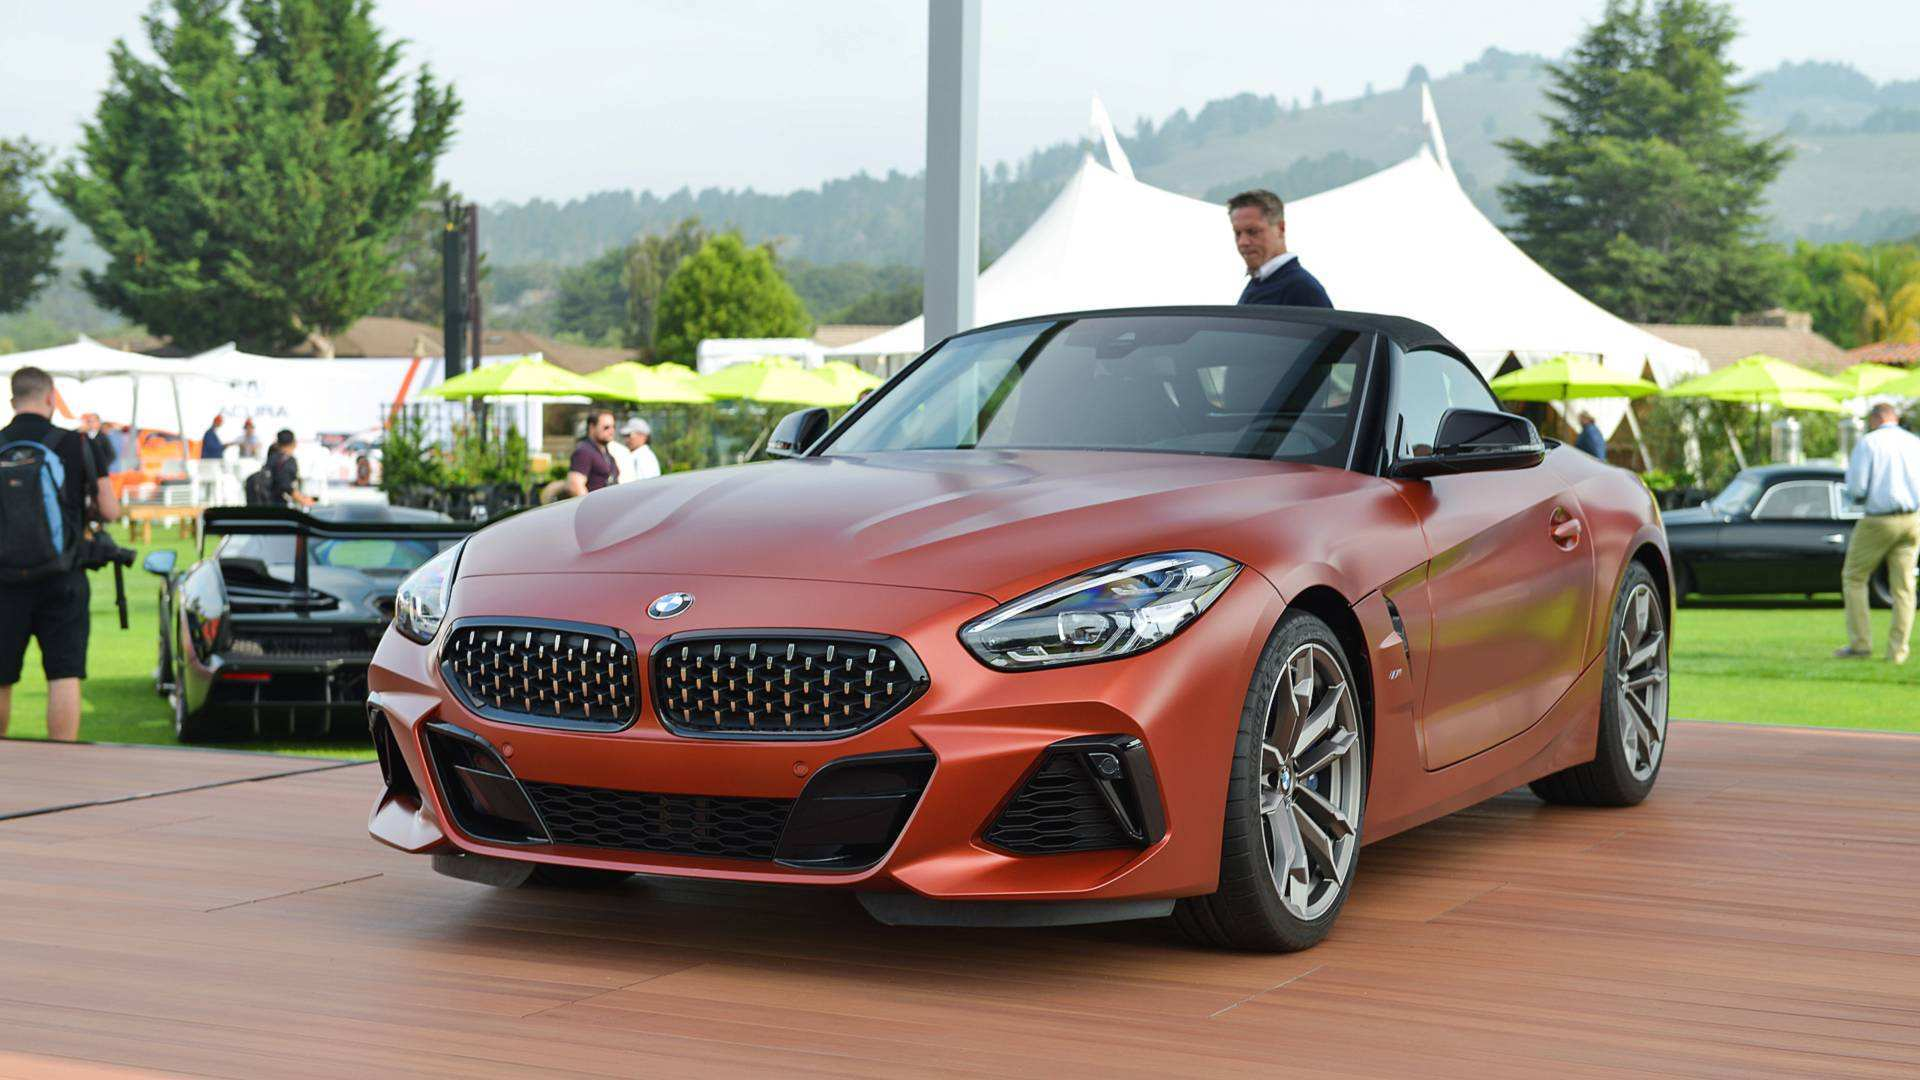 33 Best Review The Bmw 2019 Z4 Dimensions Specs And Review Redesign and Concept for The Bmw 2019 Z4 Dimensions Specs And Review